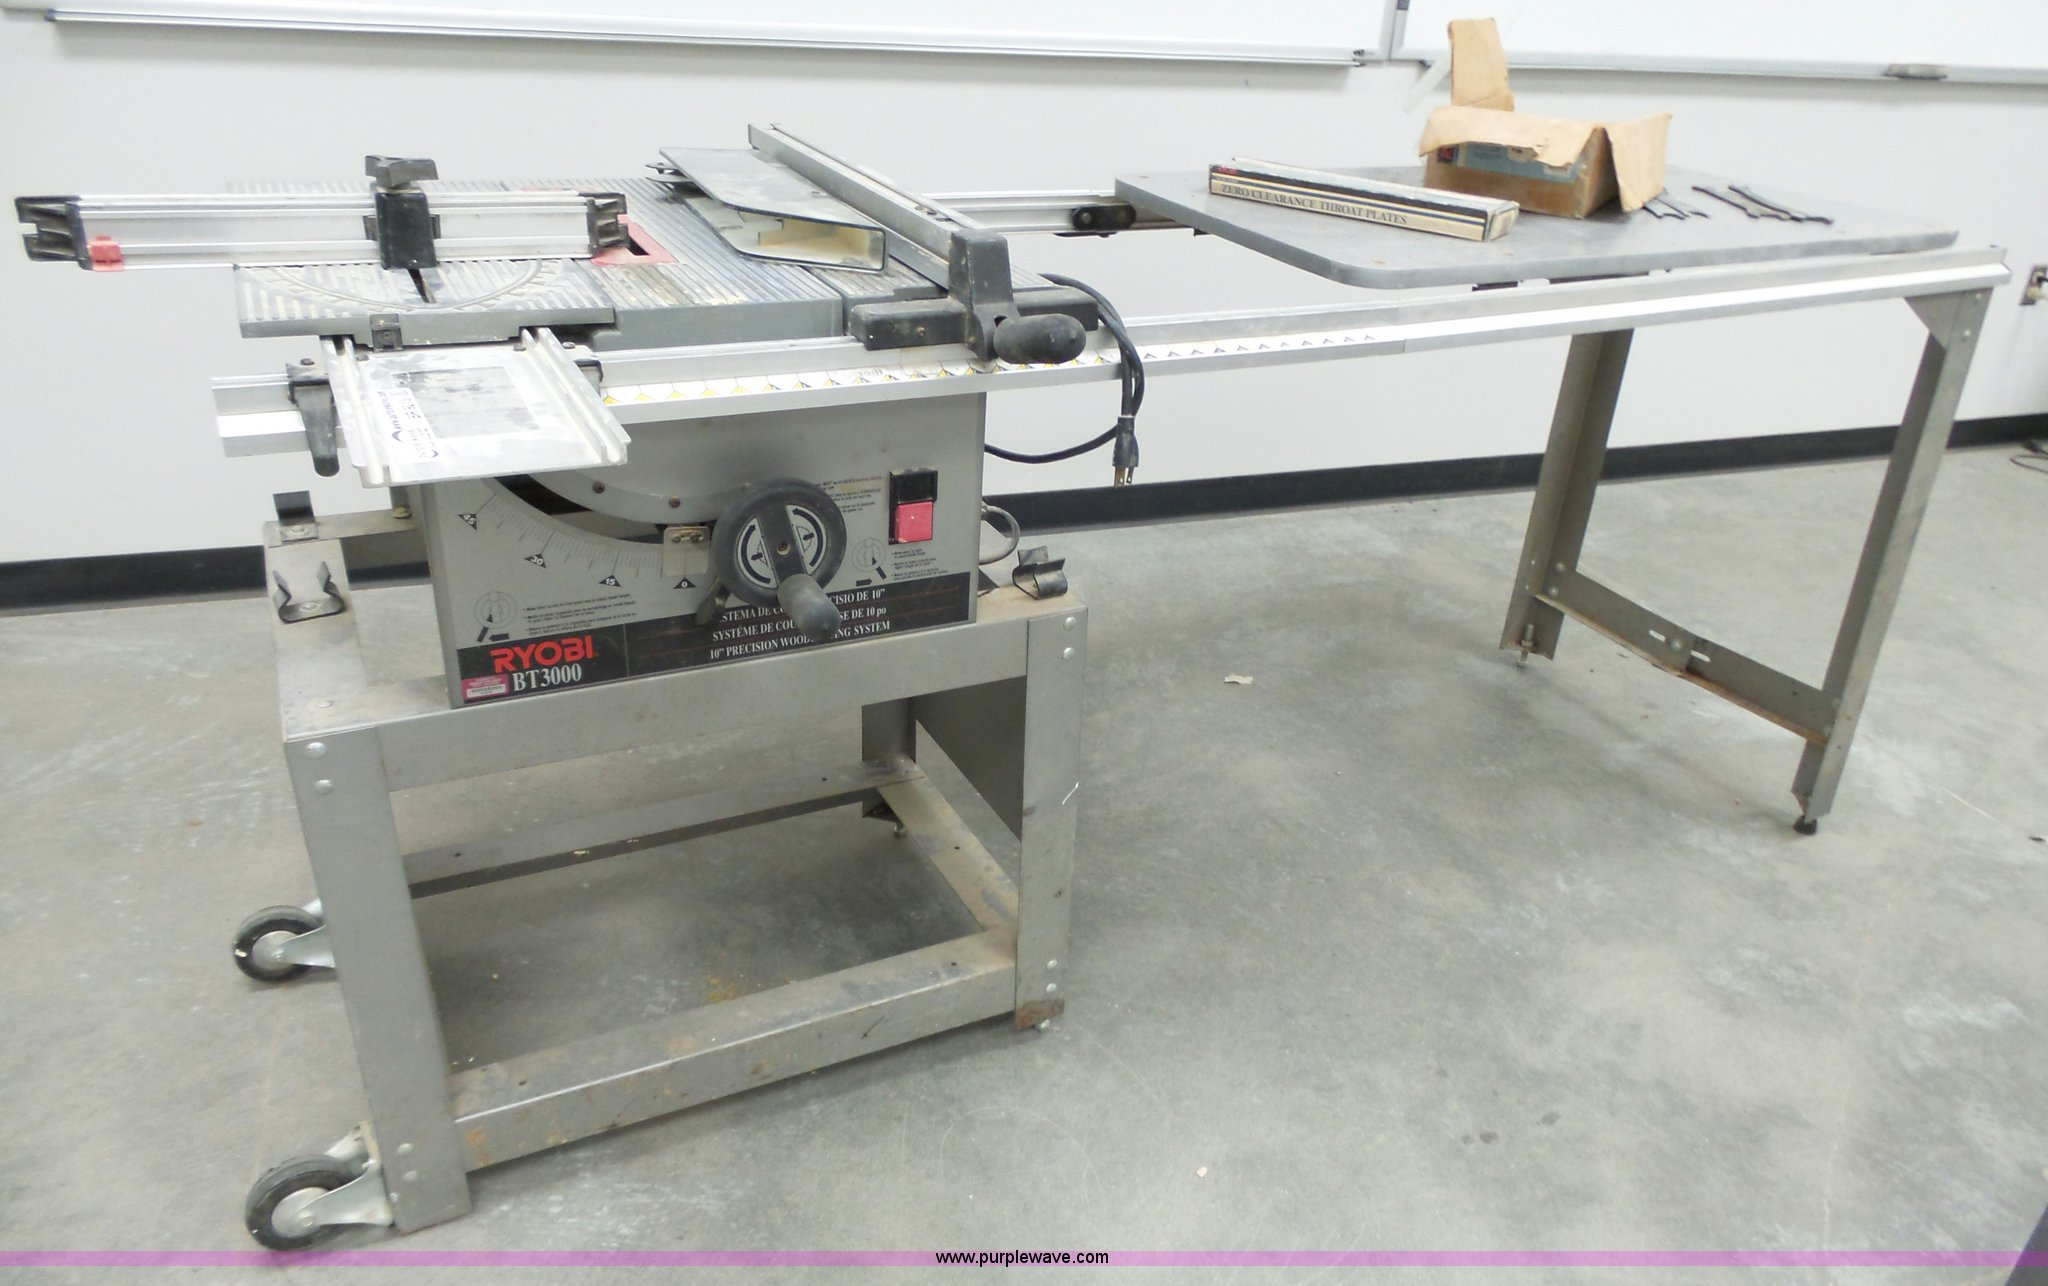 Ryobi bt3000 precision table saw item br9215 sold june br9215 image for item br9215 ryobi bt3000 precision table saw greentooth Image collections